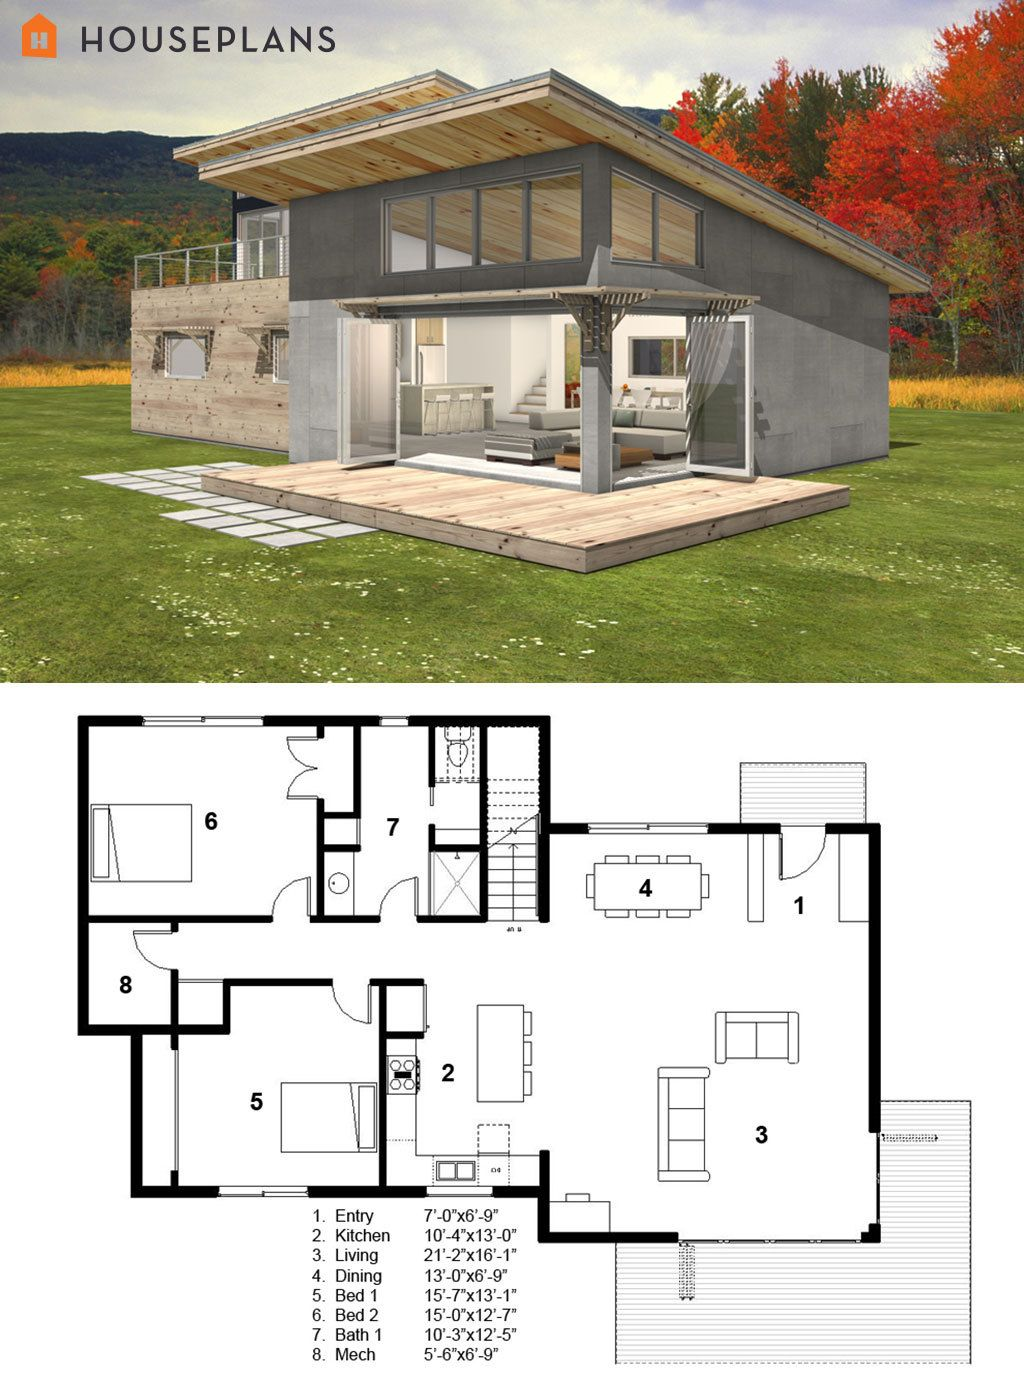 Small modern cabin house plan by freegreen energy for Compact home designs